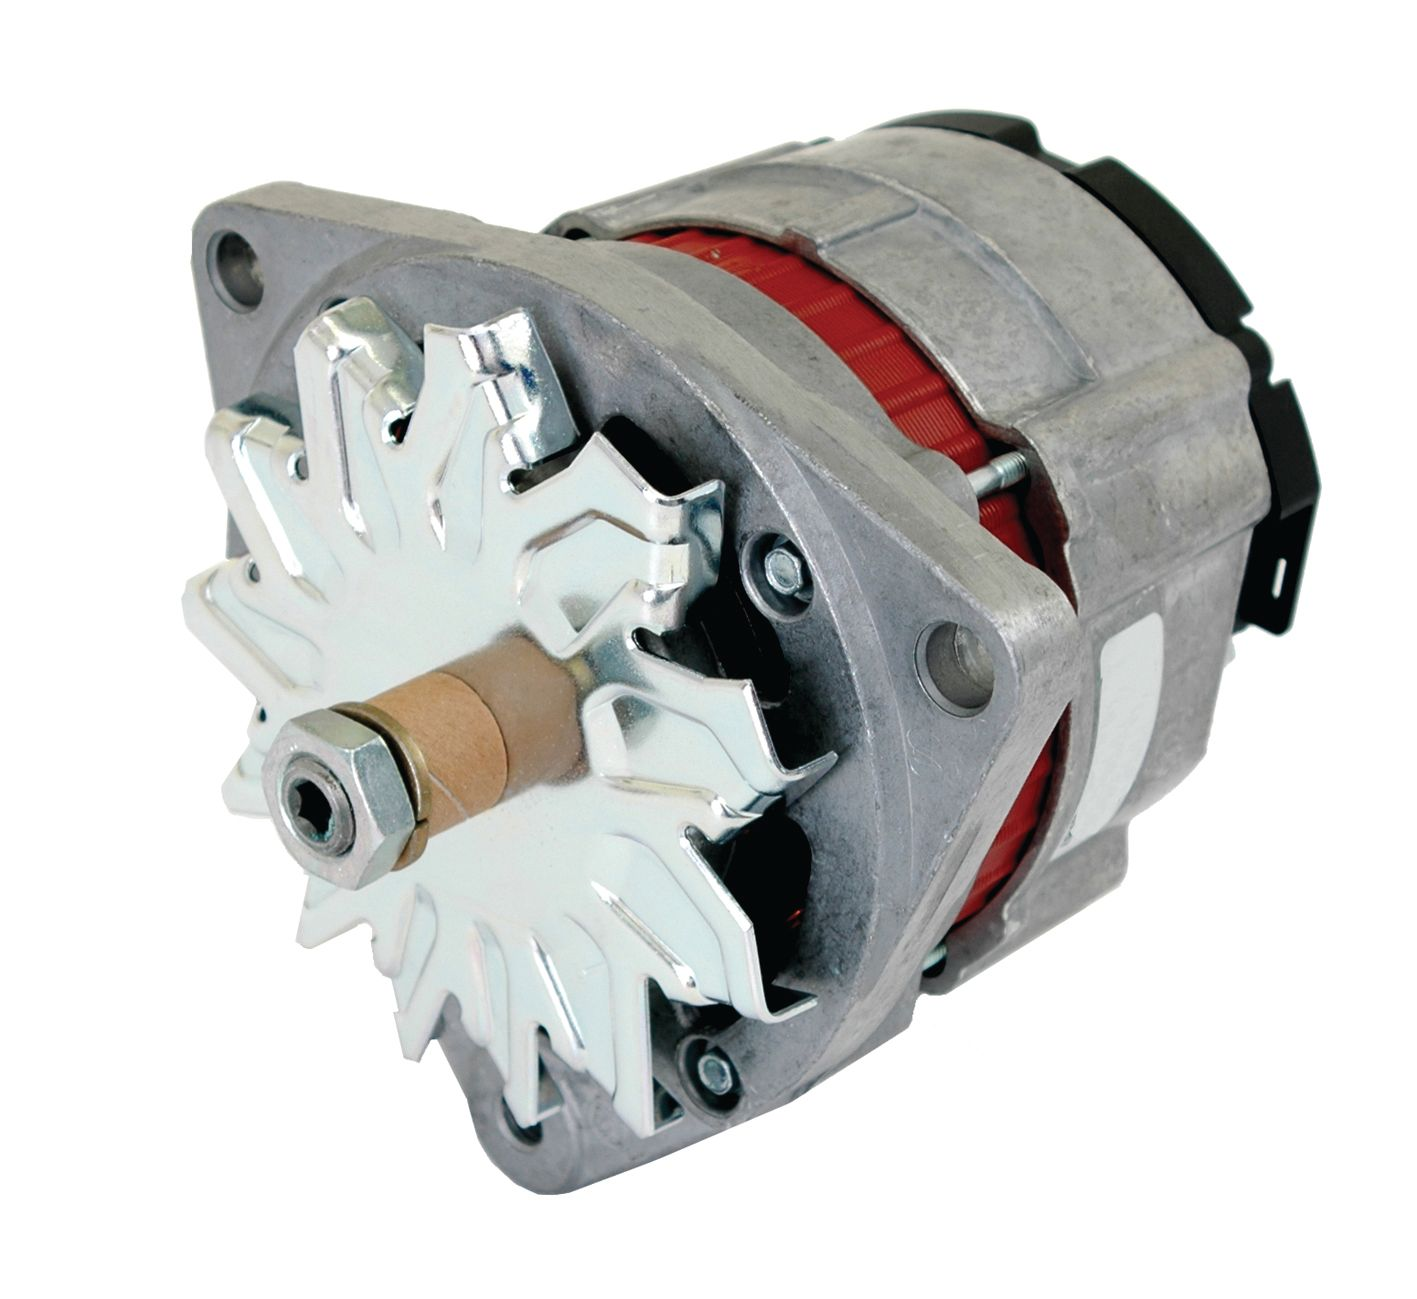 CLAAS ALTERNATOR 35944